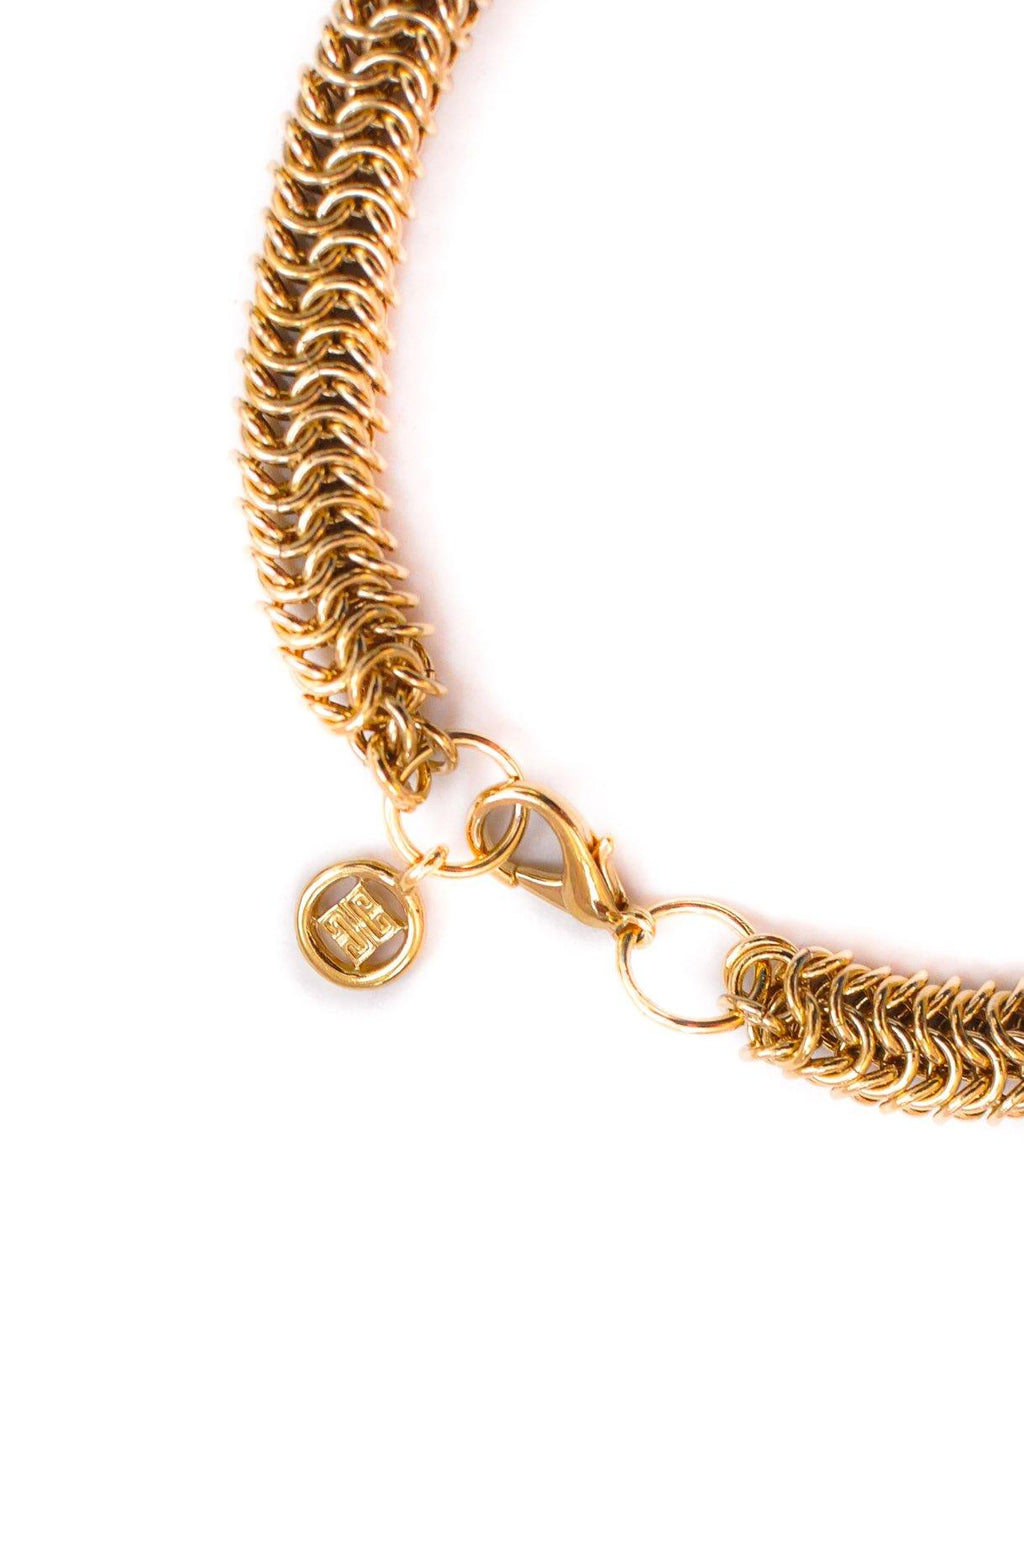 Givenchy Woven Chain Link Necklace